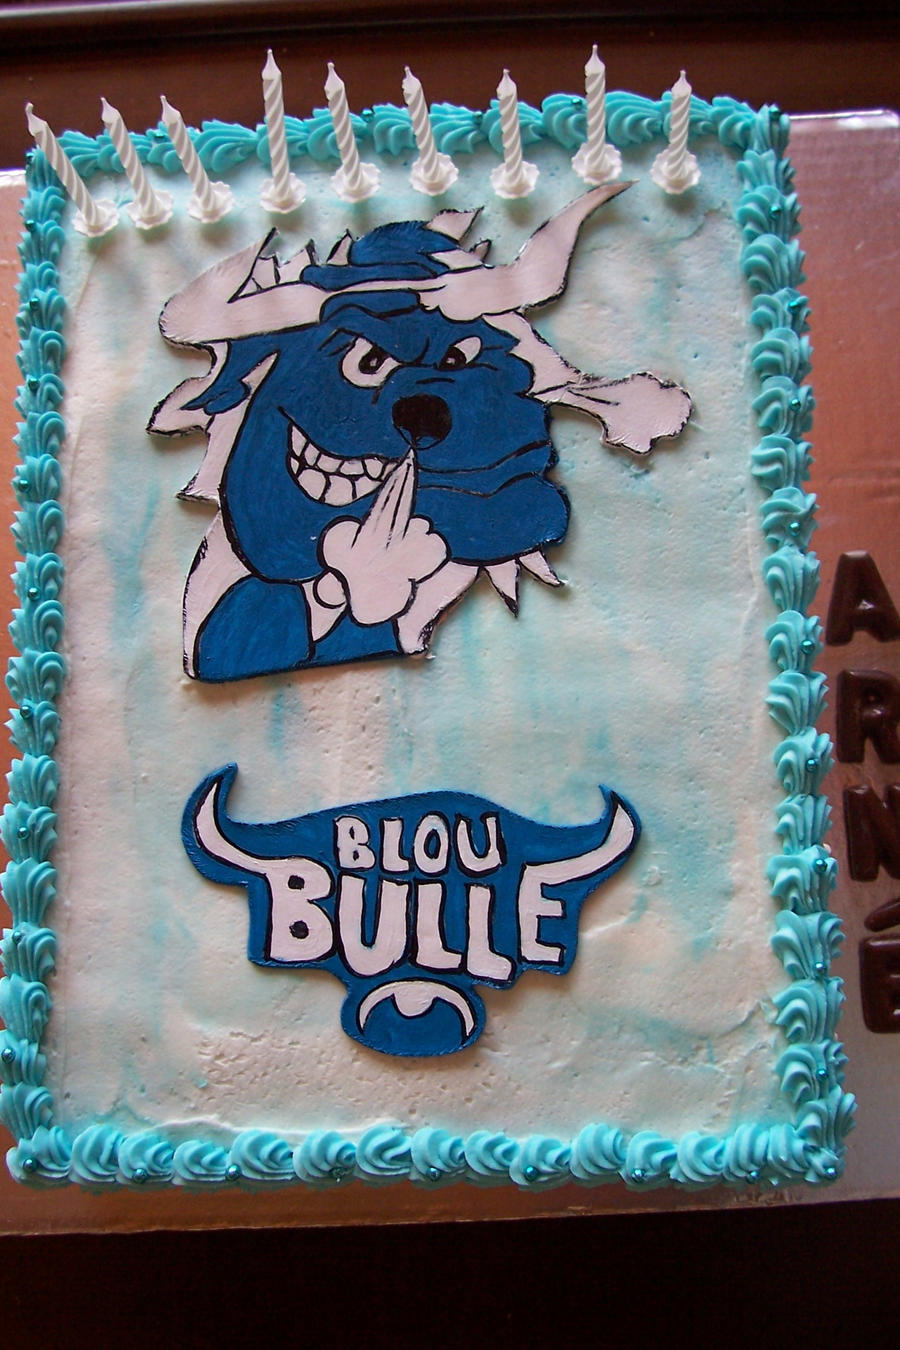 Cake Art Supplies Tucker Ga : Pin Blue Bulls Party Supplies Cake on Pinterest